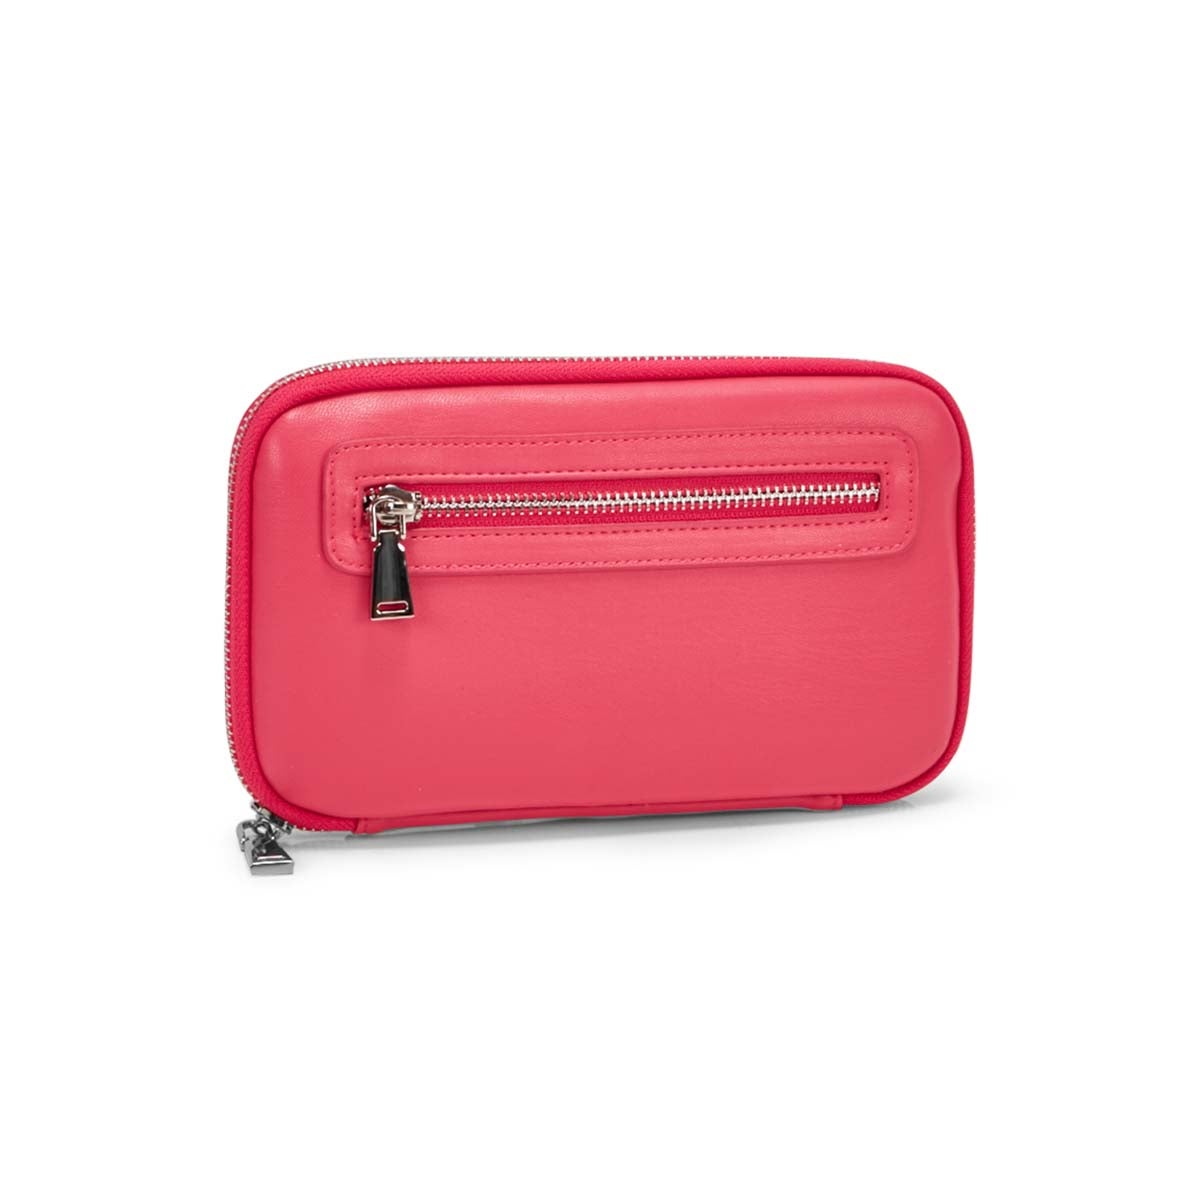 Women's HARLOW WORLD hot pink wallet